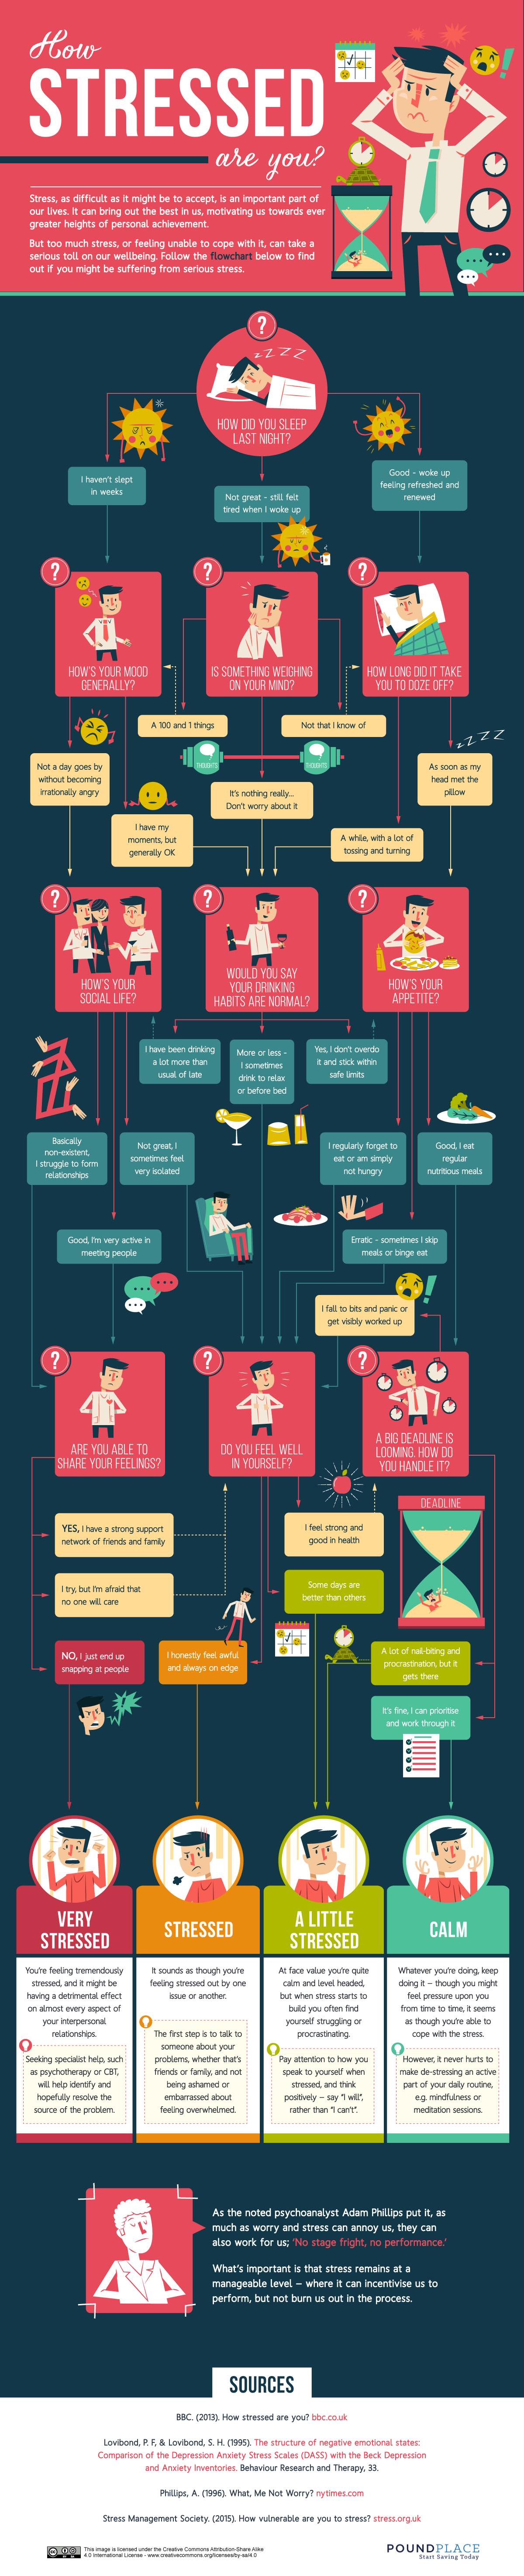 how stressed are you infographic